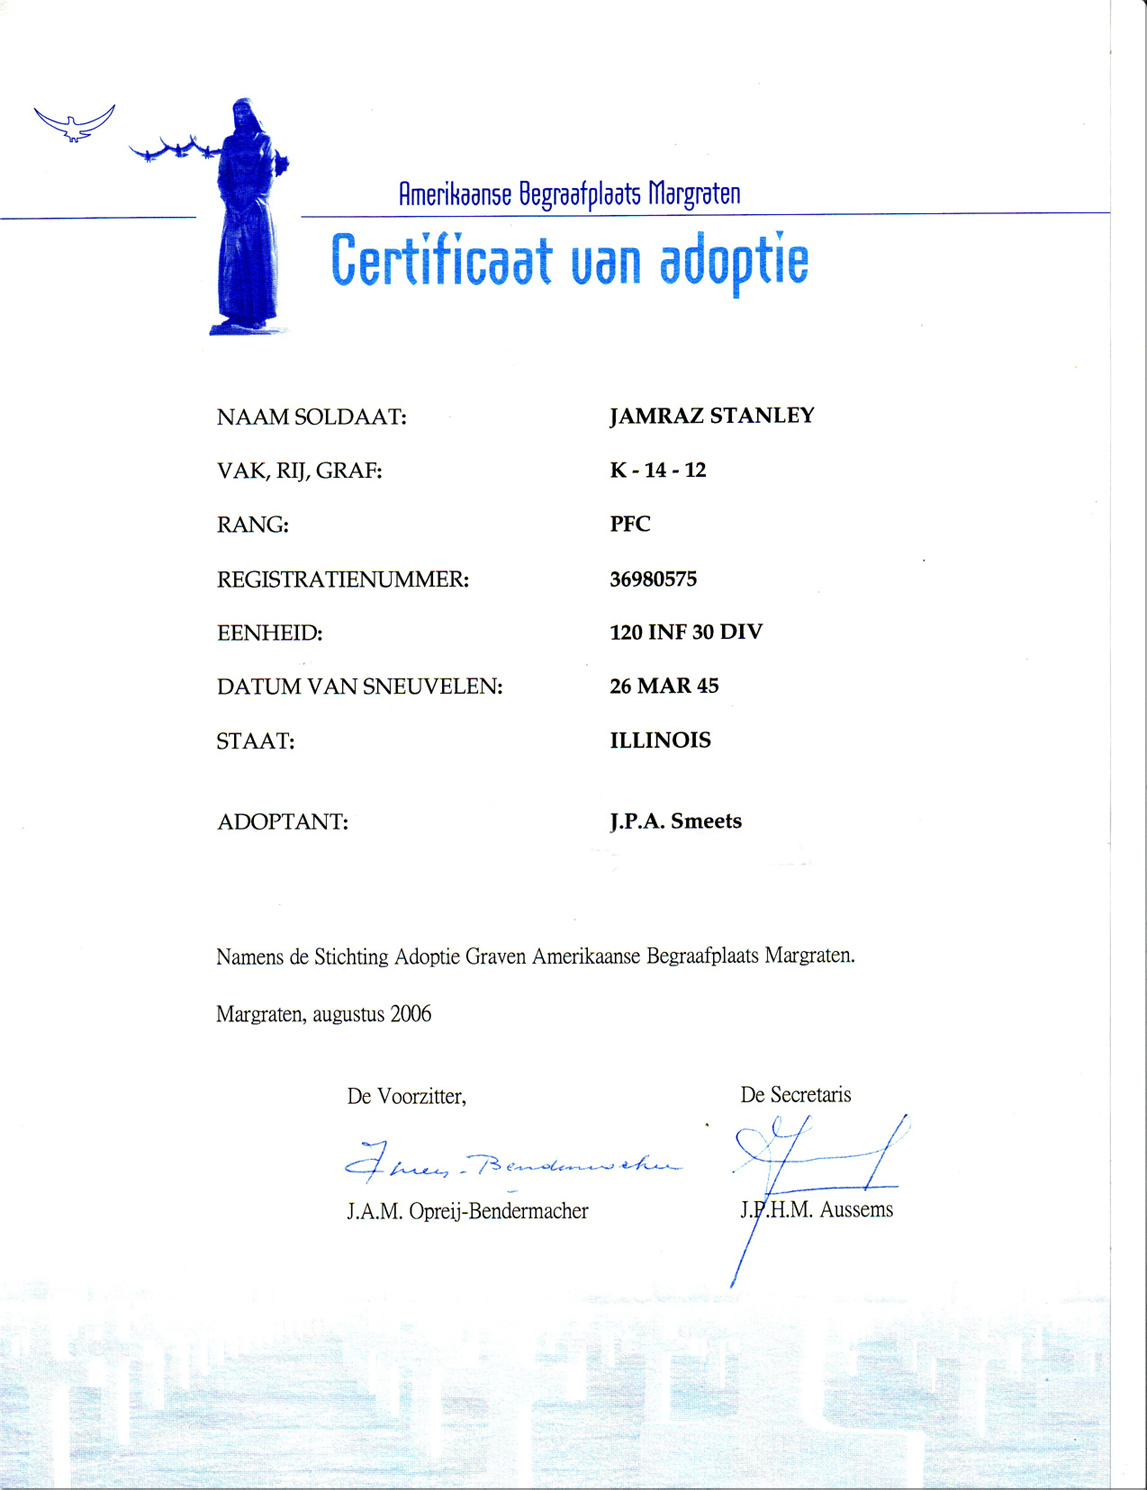 The adoption certificate